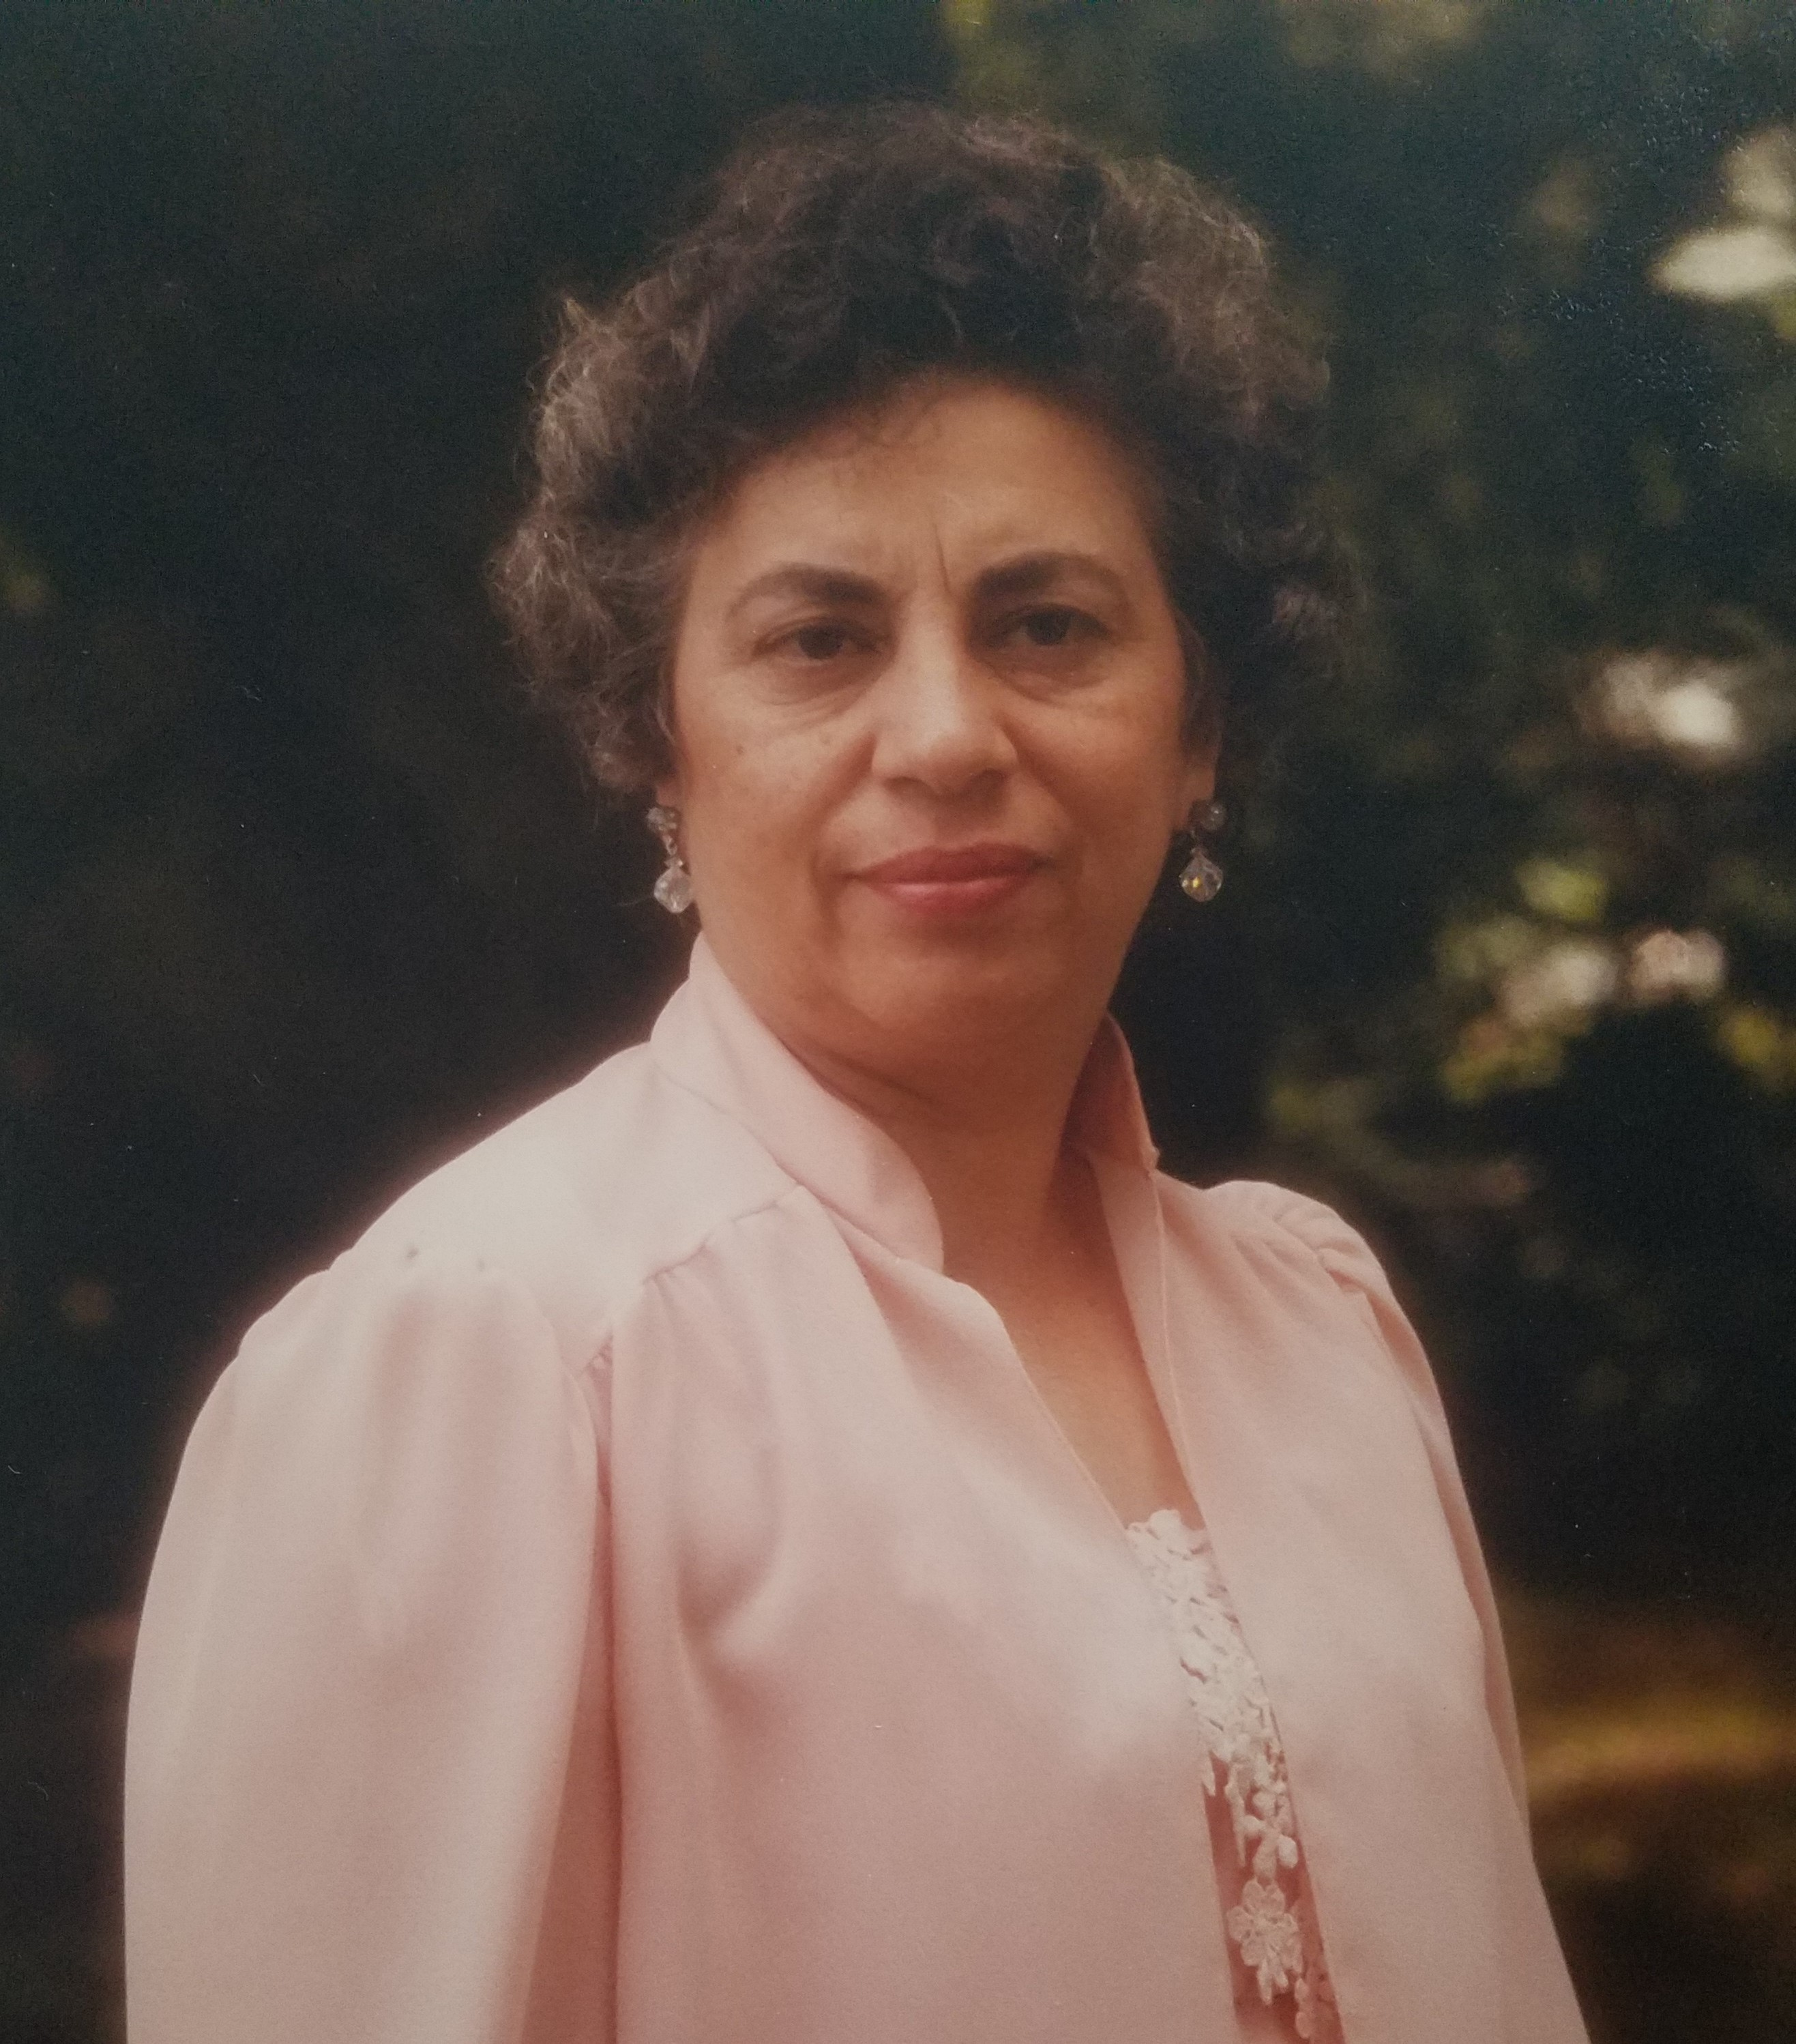 Jennie Lopolito Passes At 88